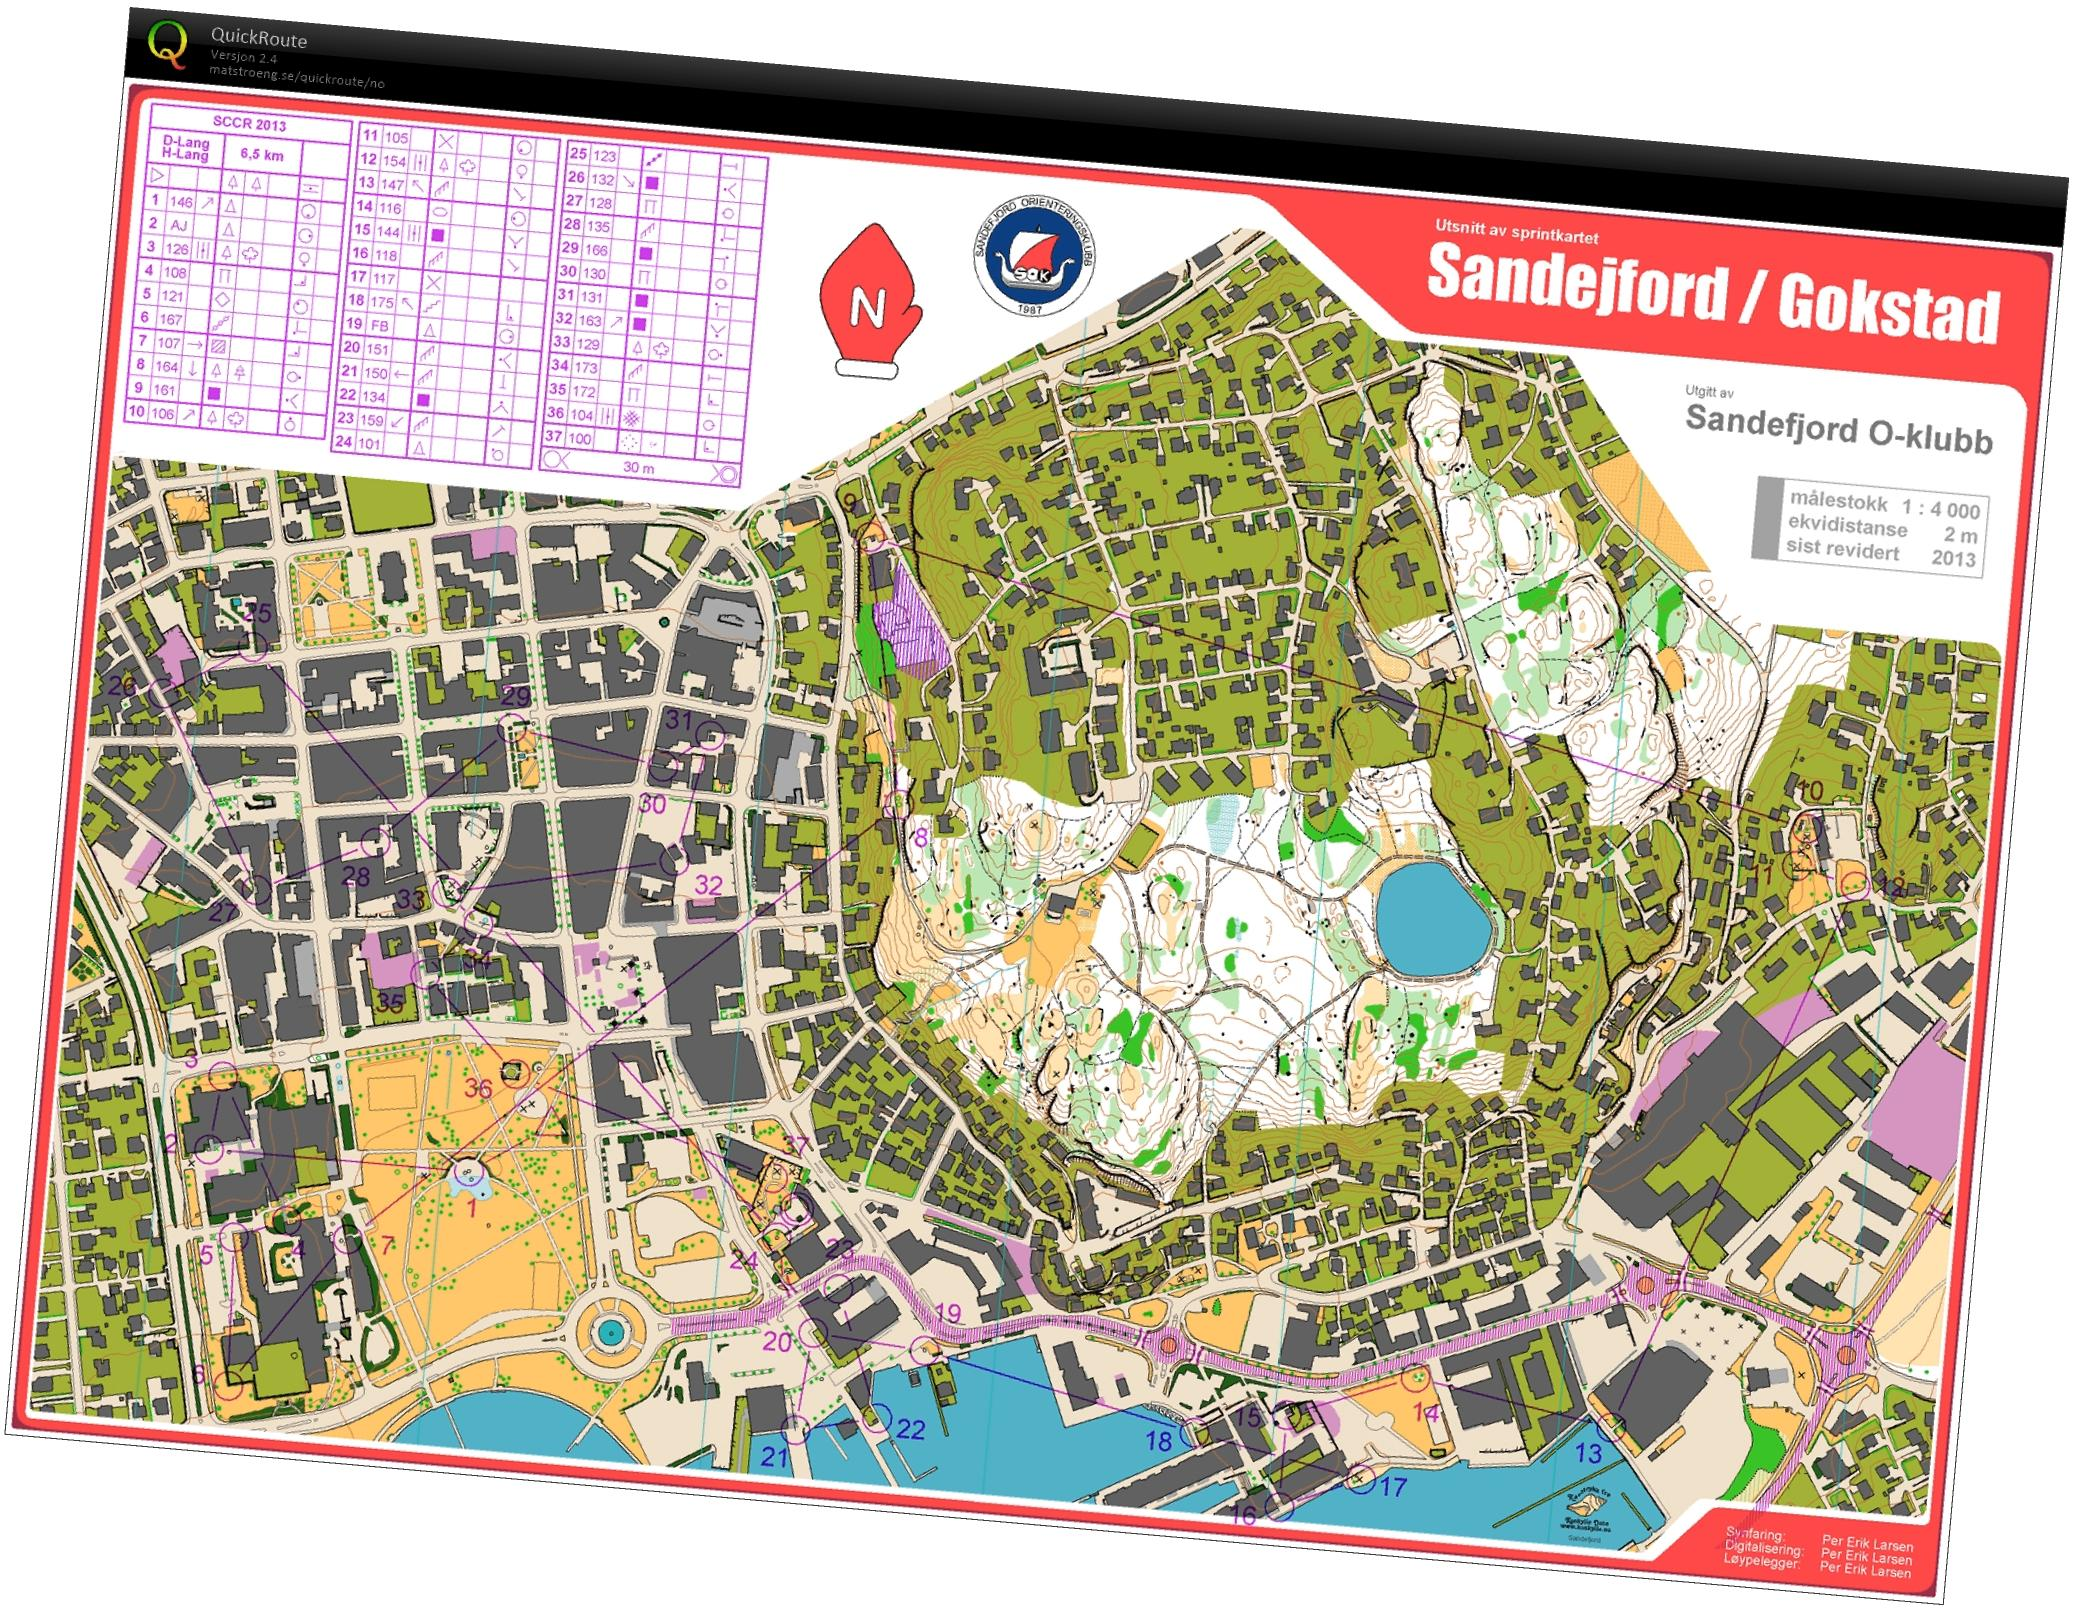 Sandefjord City Race December 17th 2013 Orienteering Map from